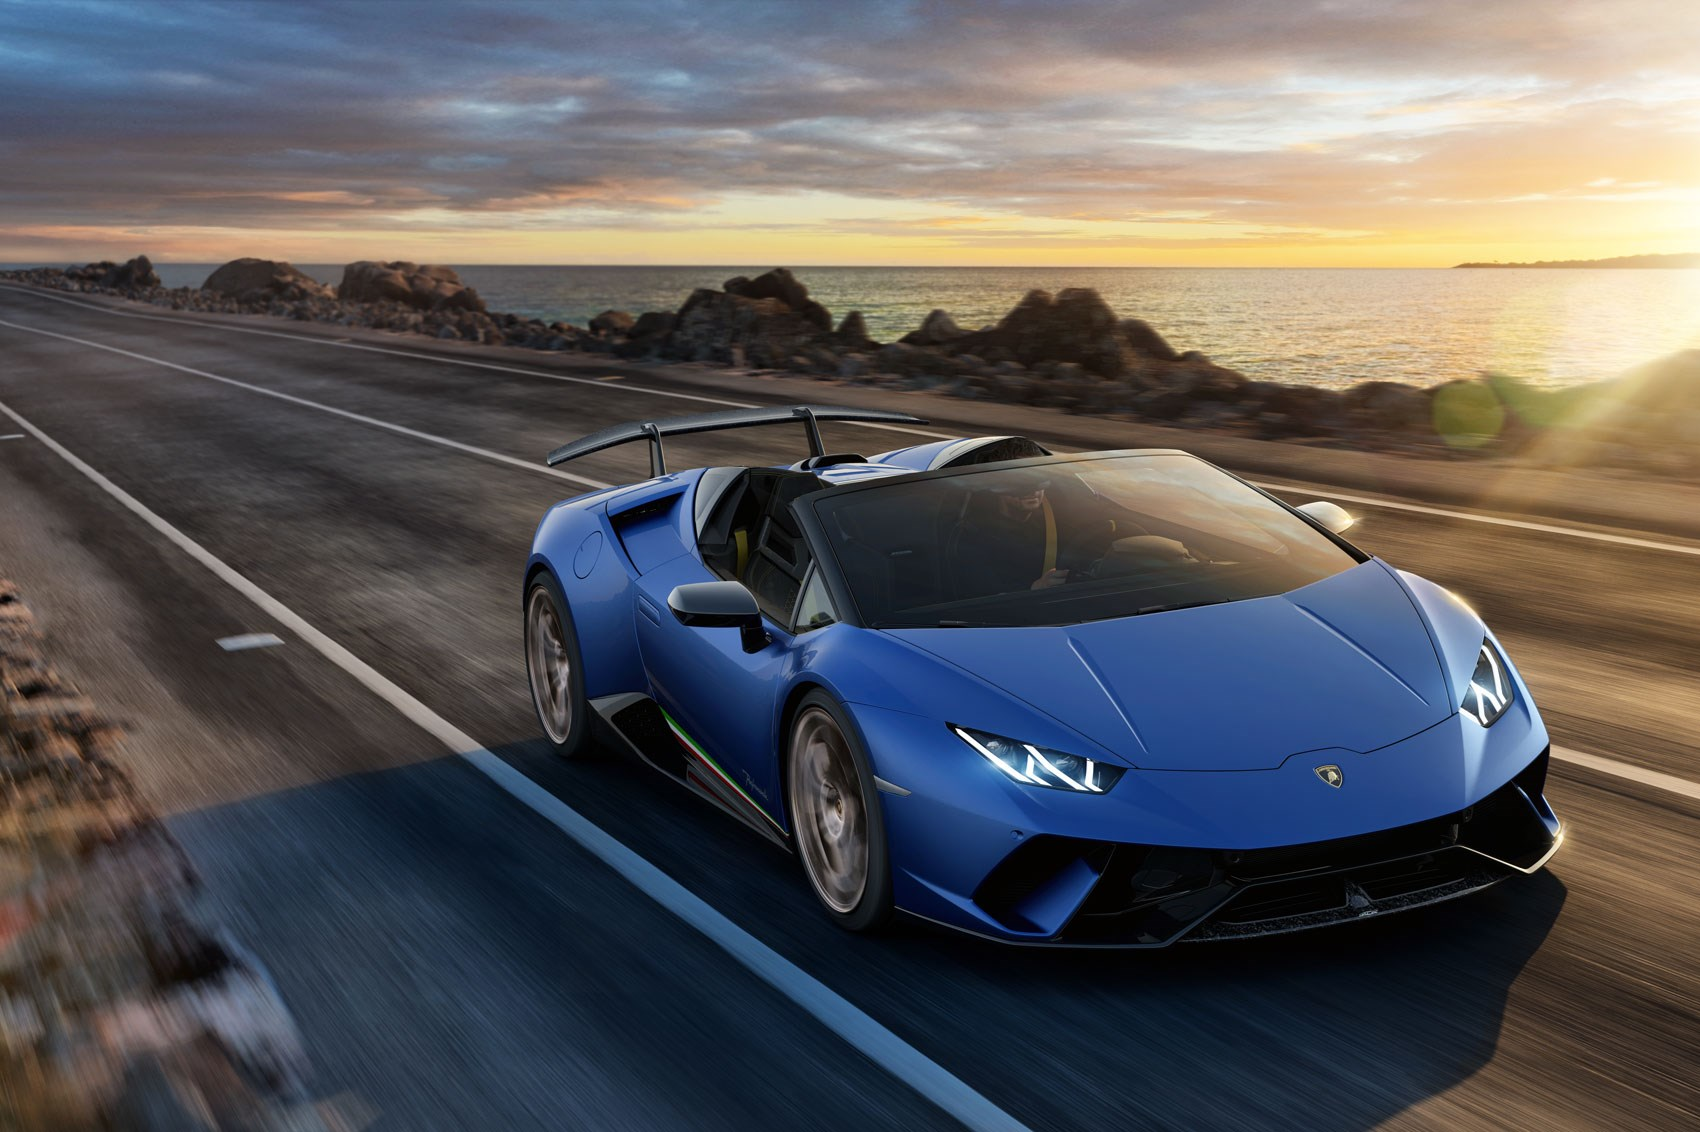 lime australian price news green huracan spyder lamborghini carsguide car debut makes